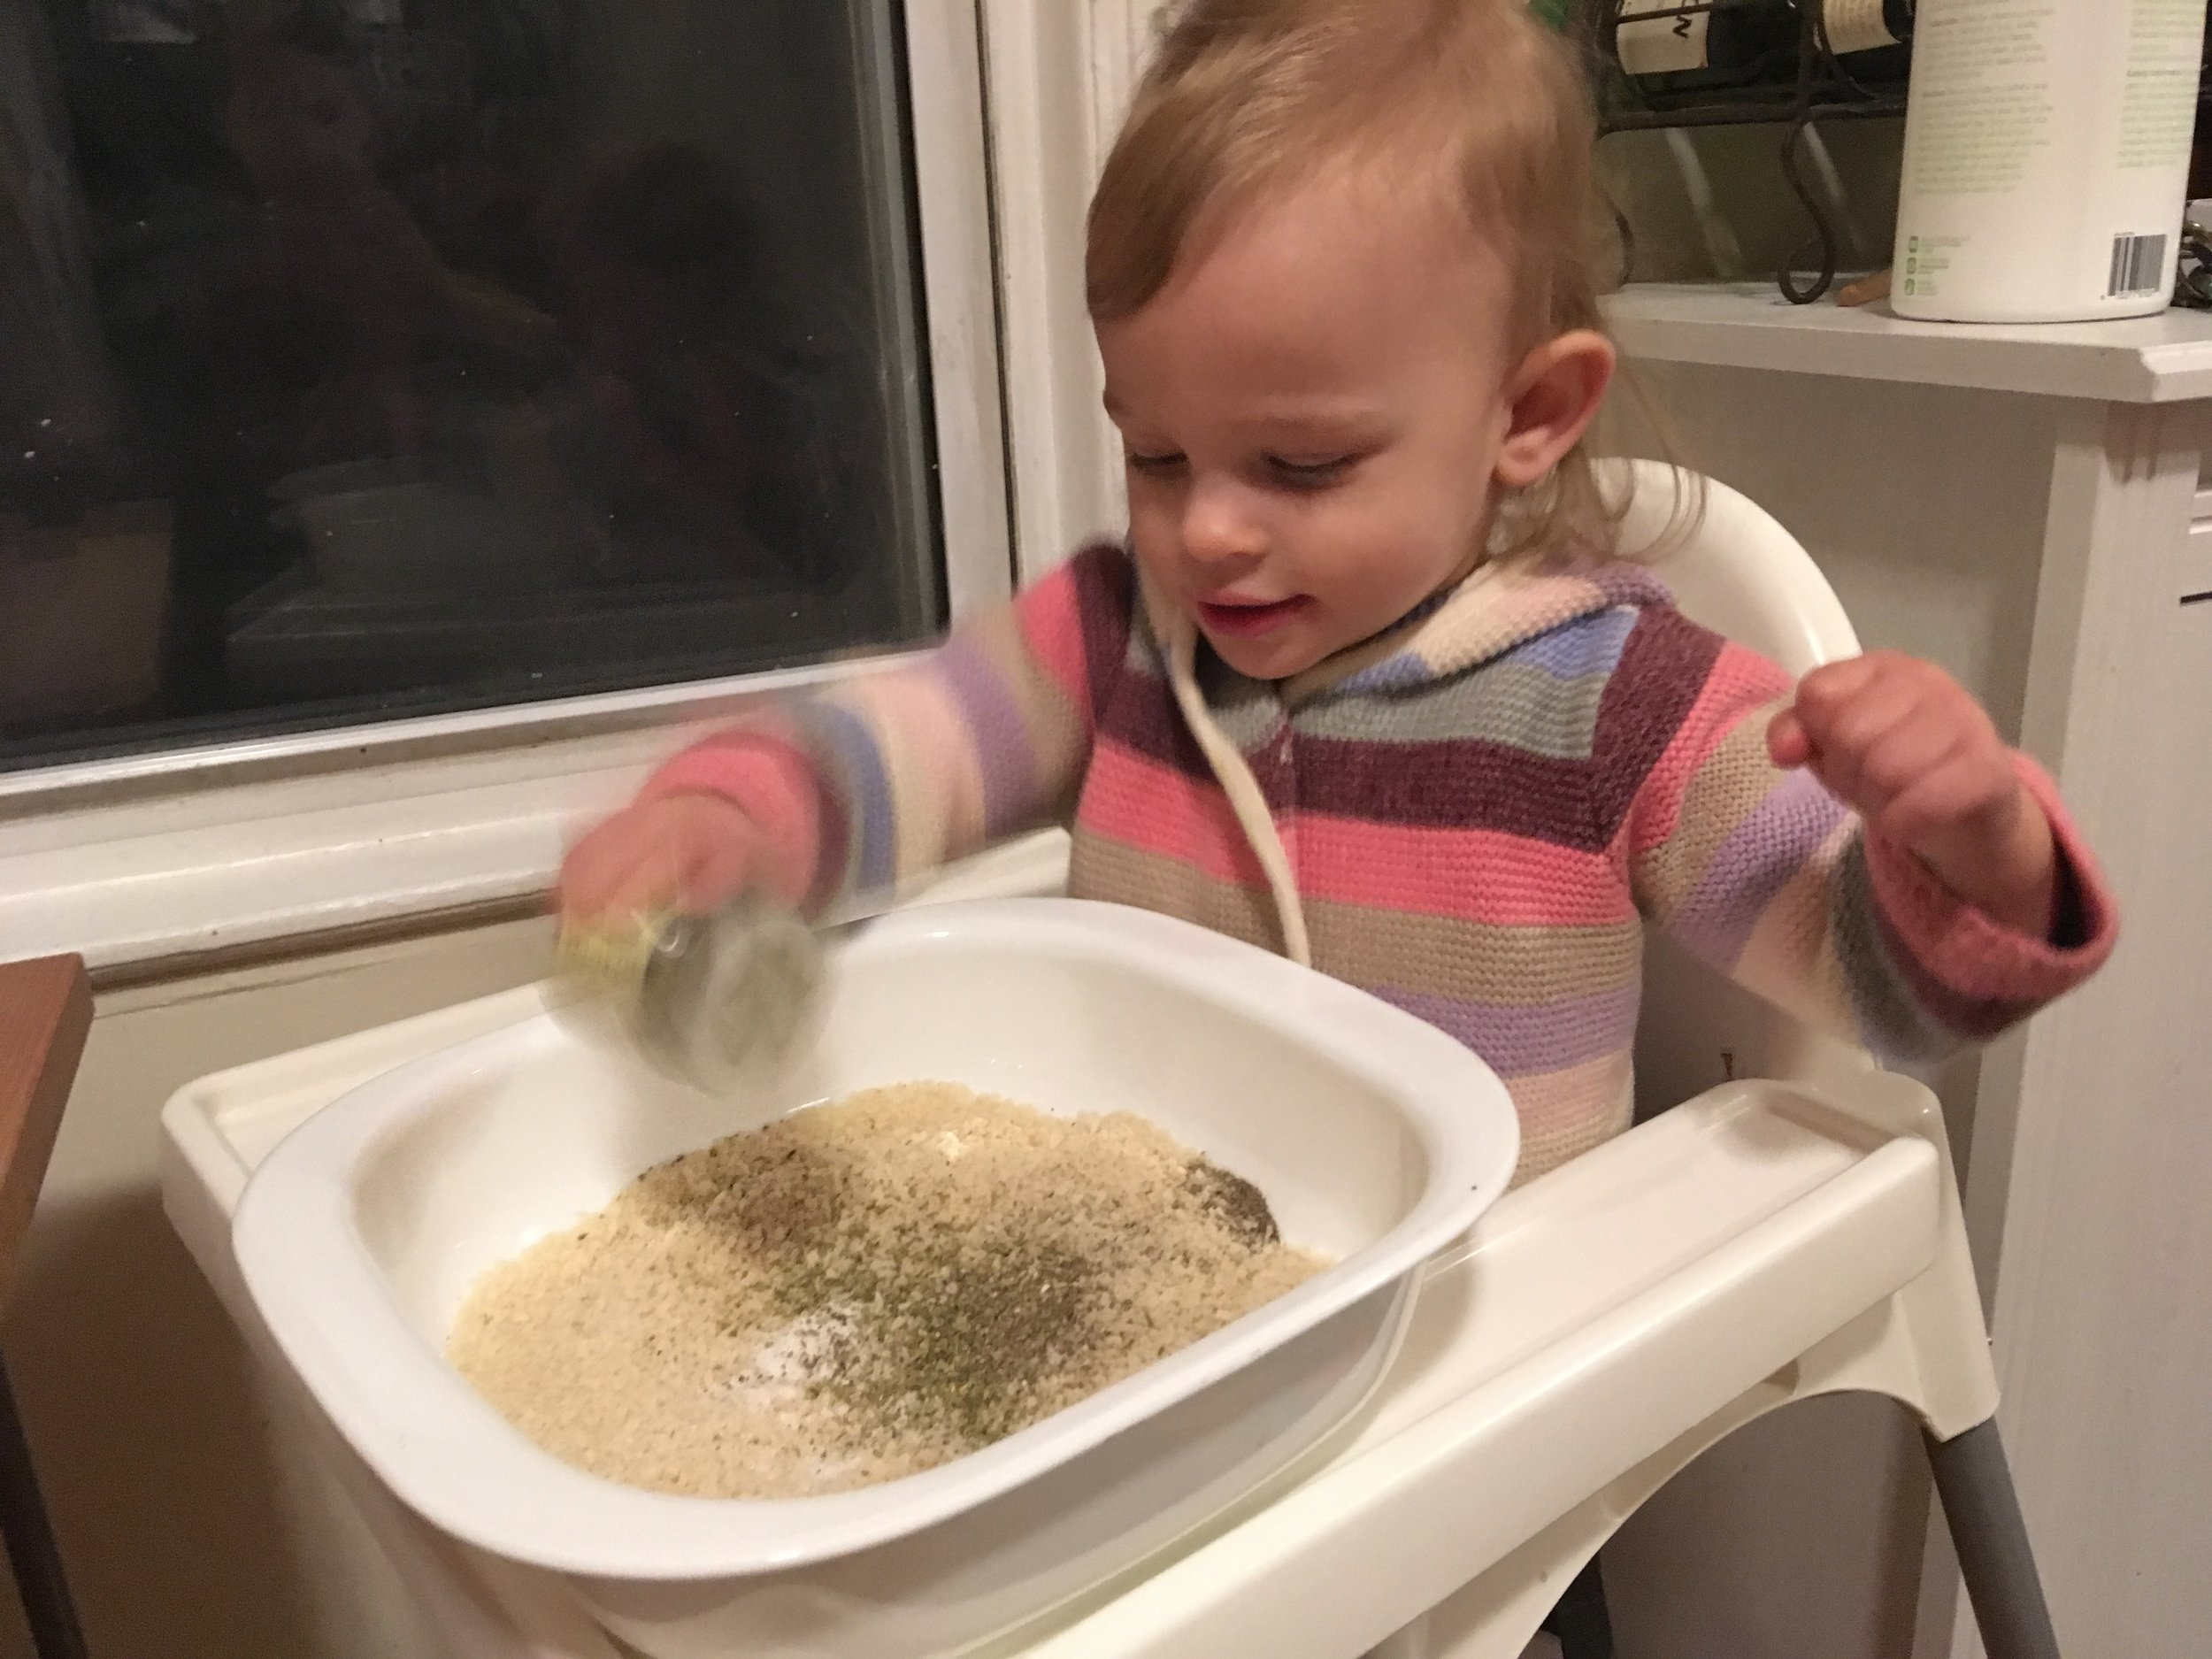 My little Ava, chef in training! She loves to shake the spice jars when we're cooking together.